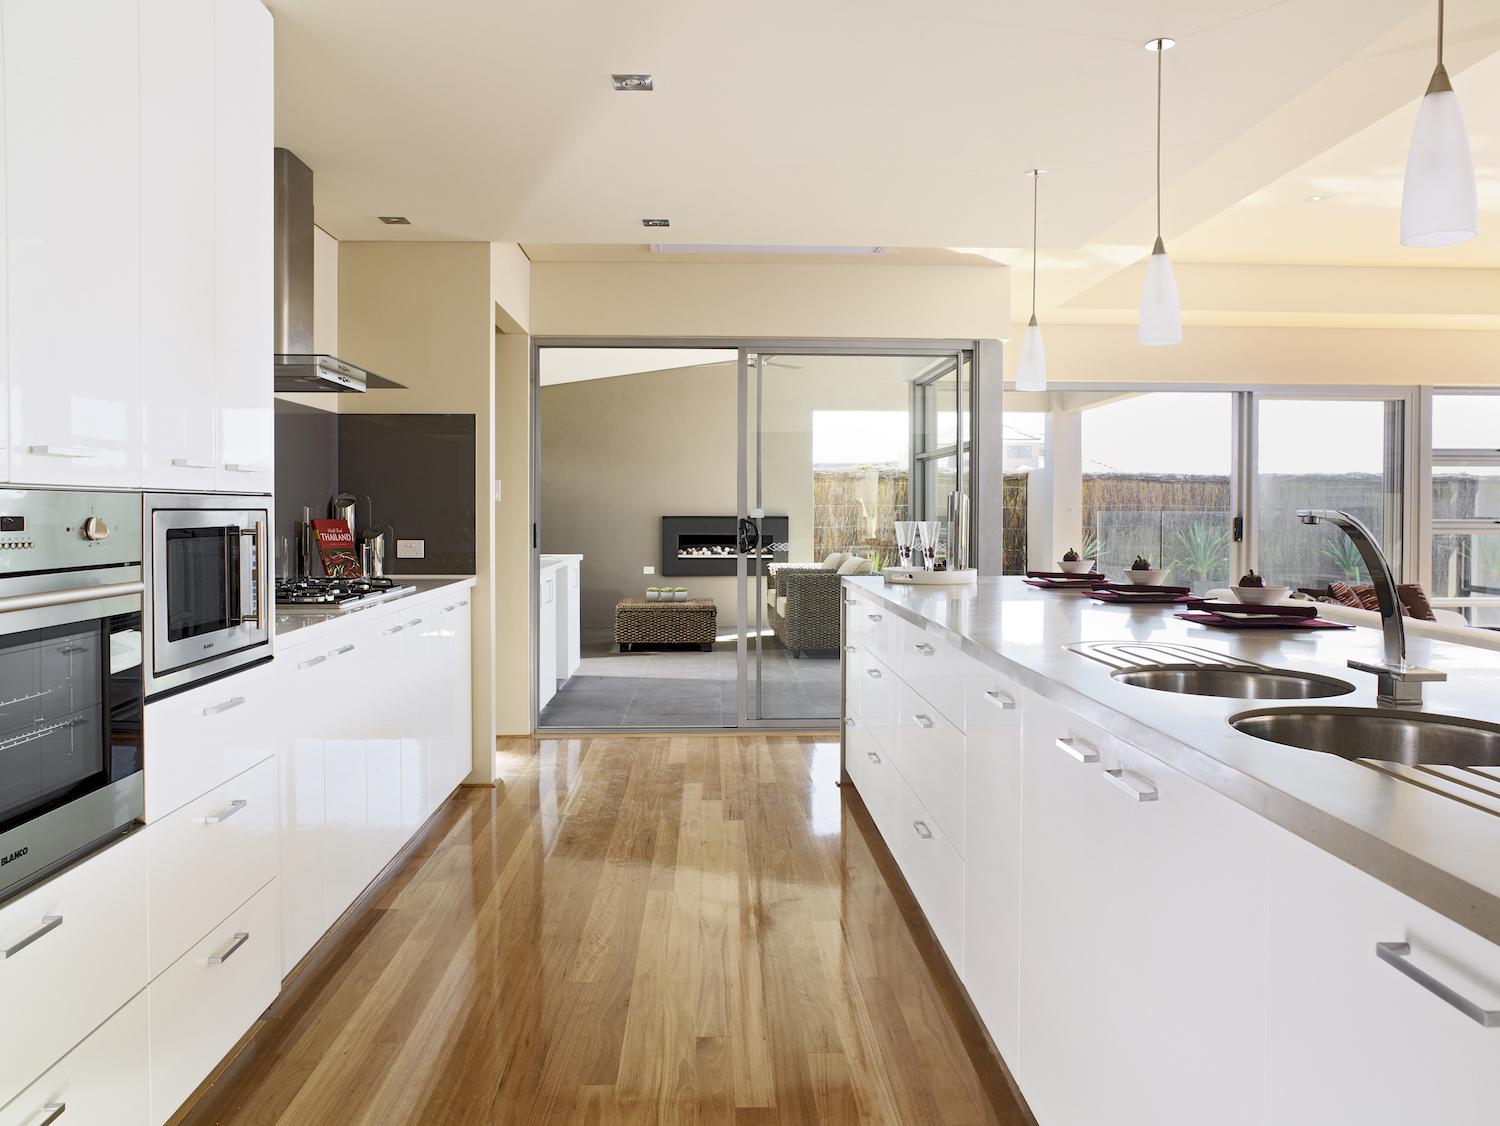 Residential Attitudes - Open-plan kitchen with access to patio